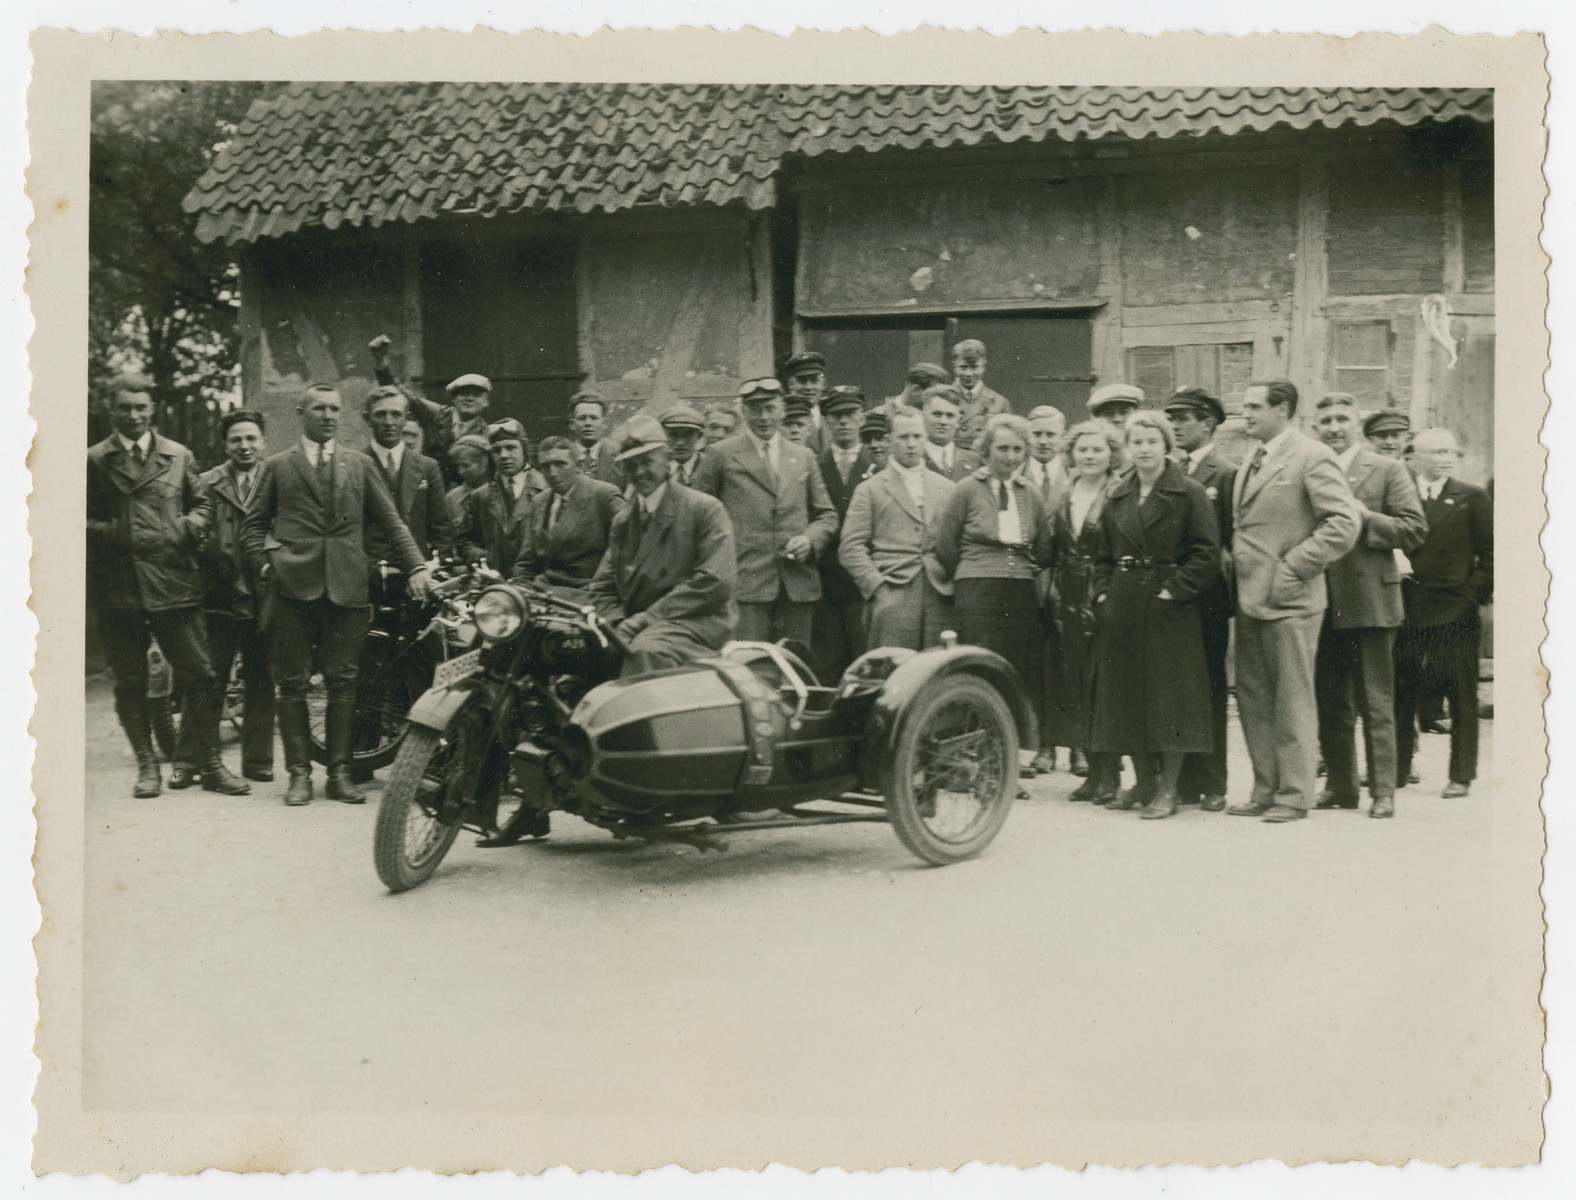 "Group portrait of members of a motorcycle club,  The original caption ""Fox Hunt"" refers to the orienteering game played by members of the club.  Walter Kleeblatt is pictured second from the left.  One of the members (back left) raises a fist in the communist ""Red Front"" greeting."